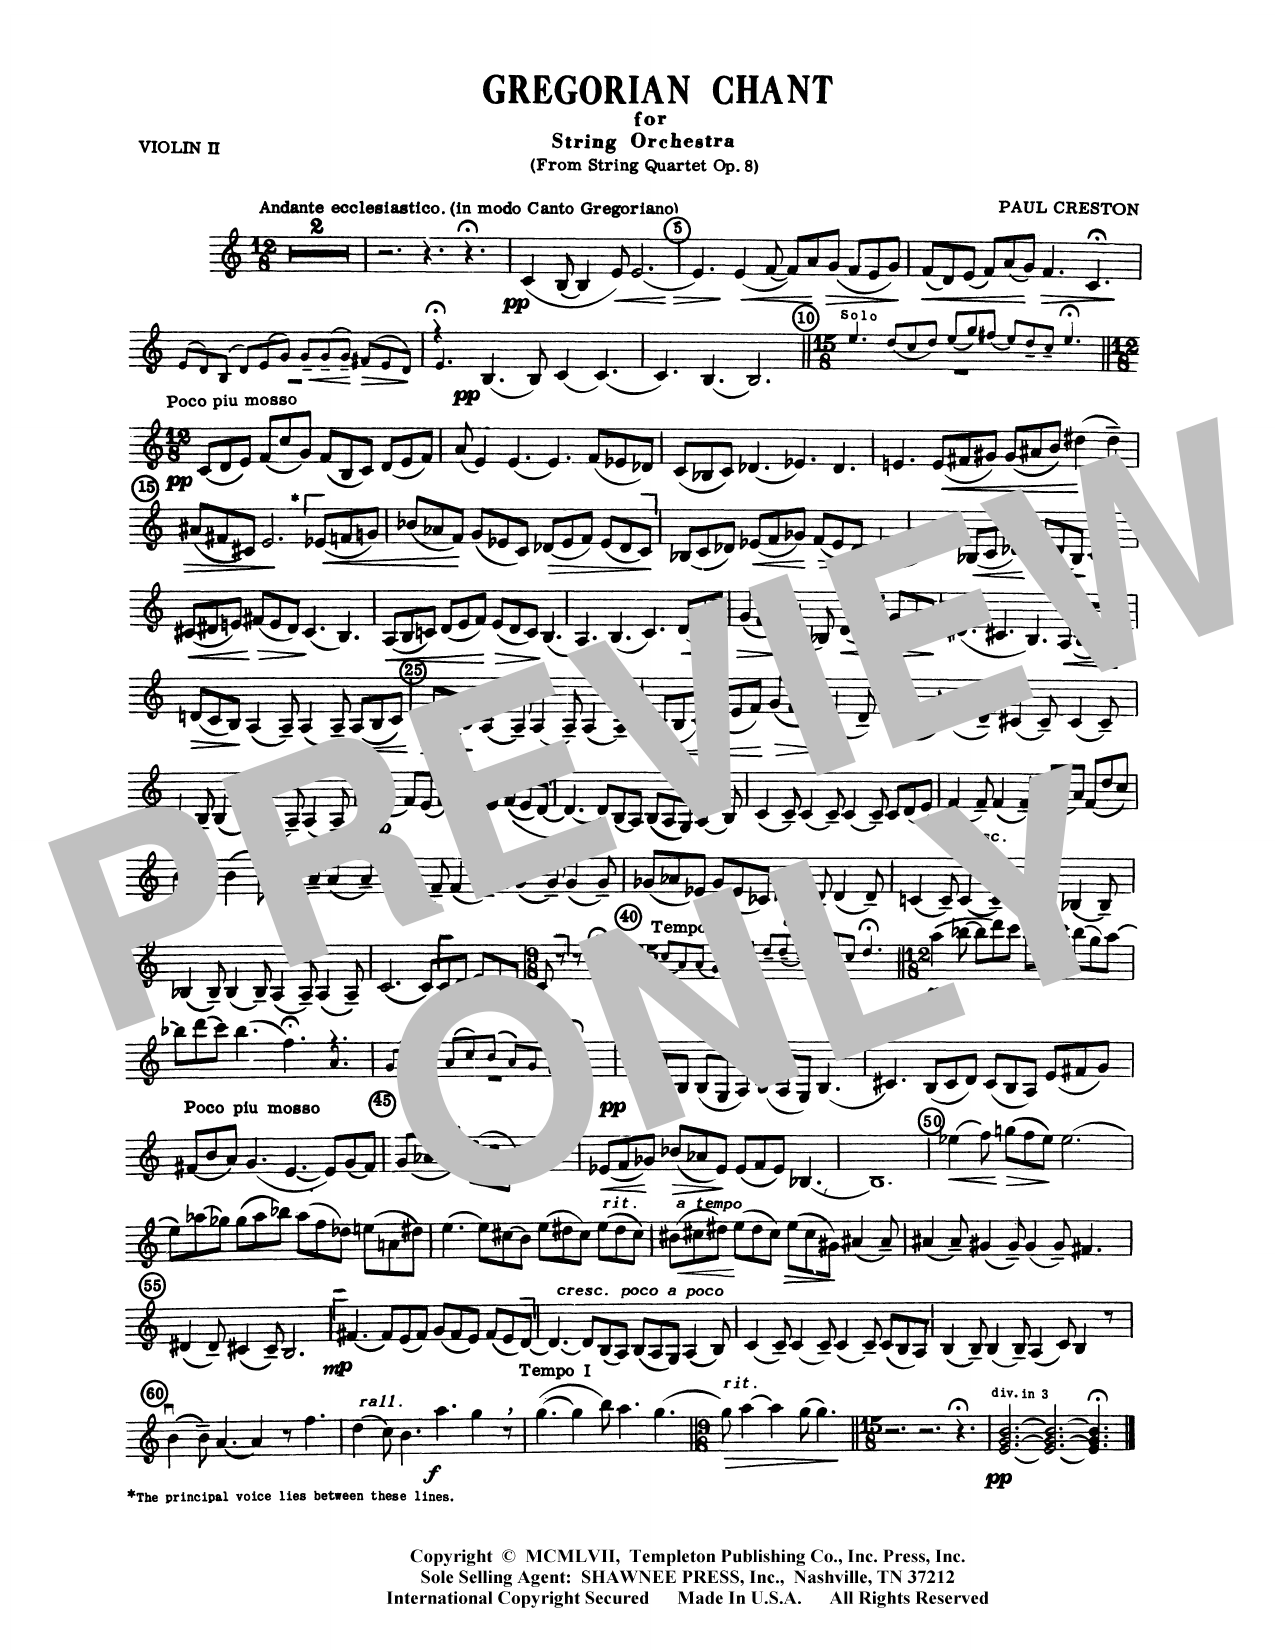 Paul Creston Gregorian Chant for String Orchestra - Viola sheet music preview music notes and score for Orchestra including 1 page(s)